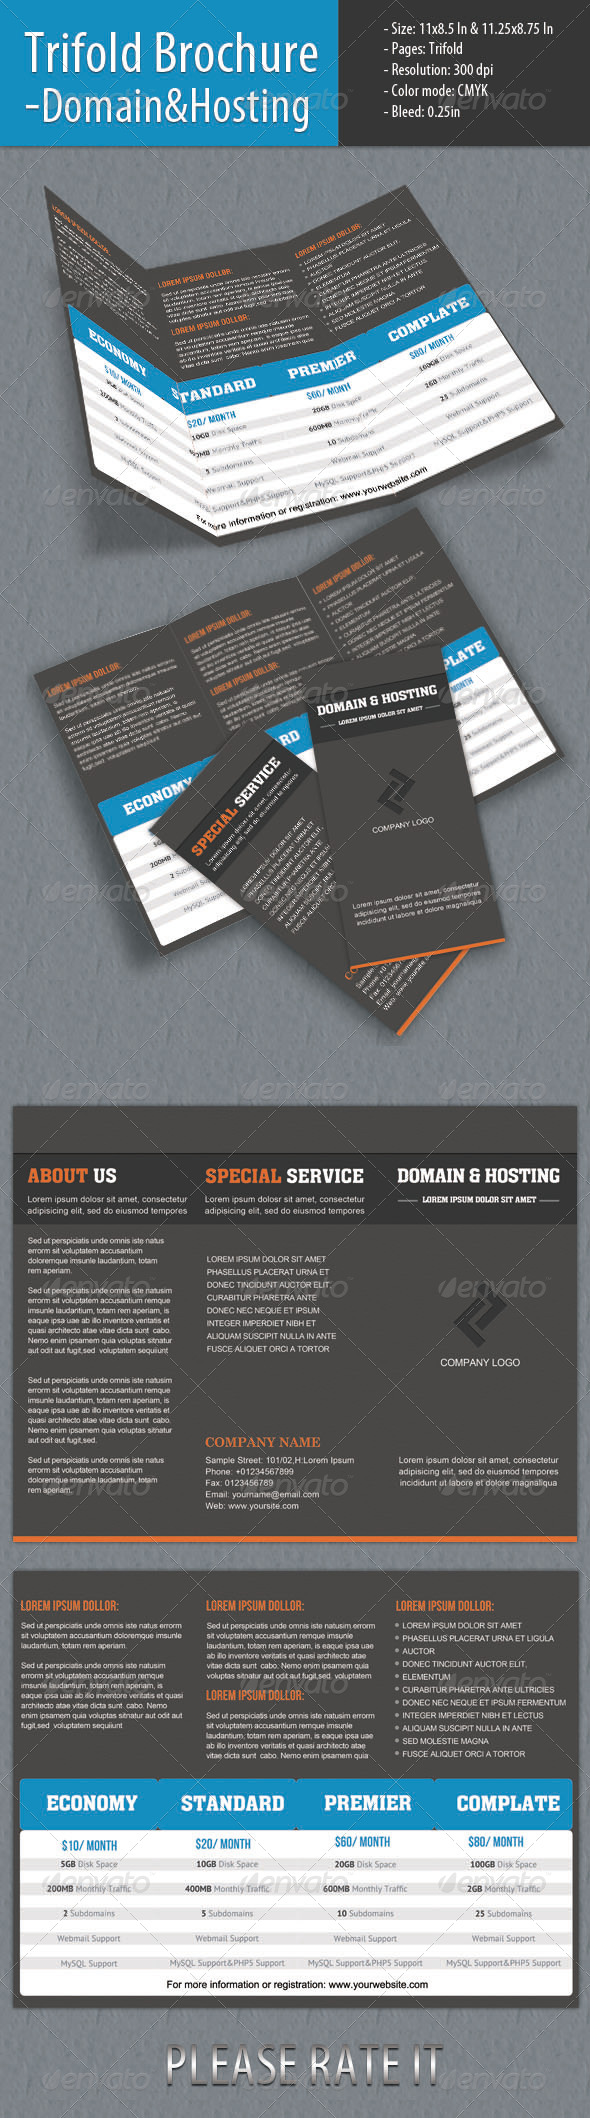 Trifold Brochure - Domain & Hosting - Brochures Print Templates